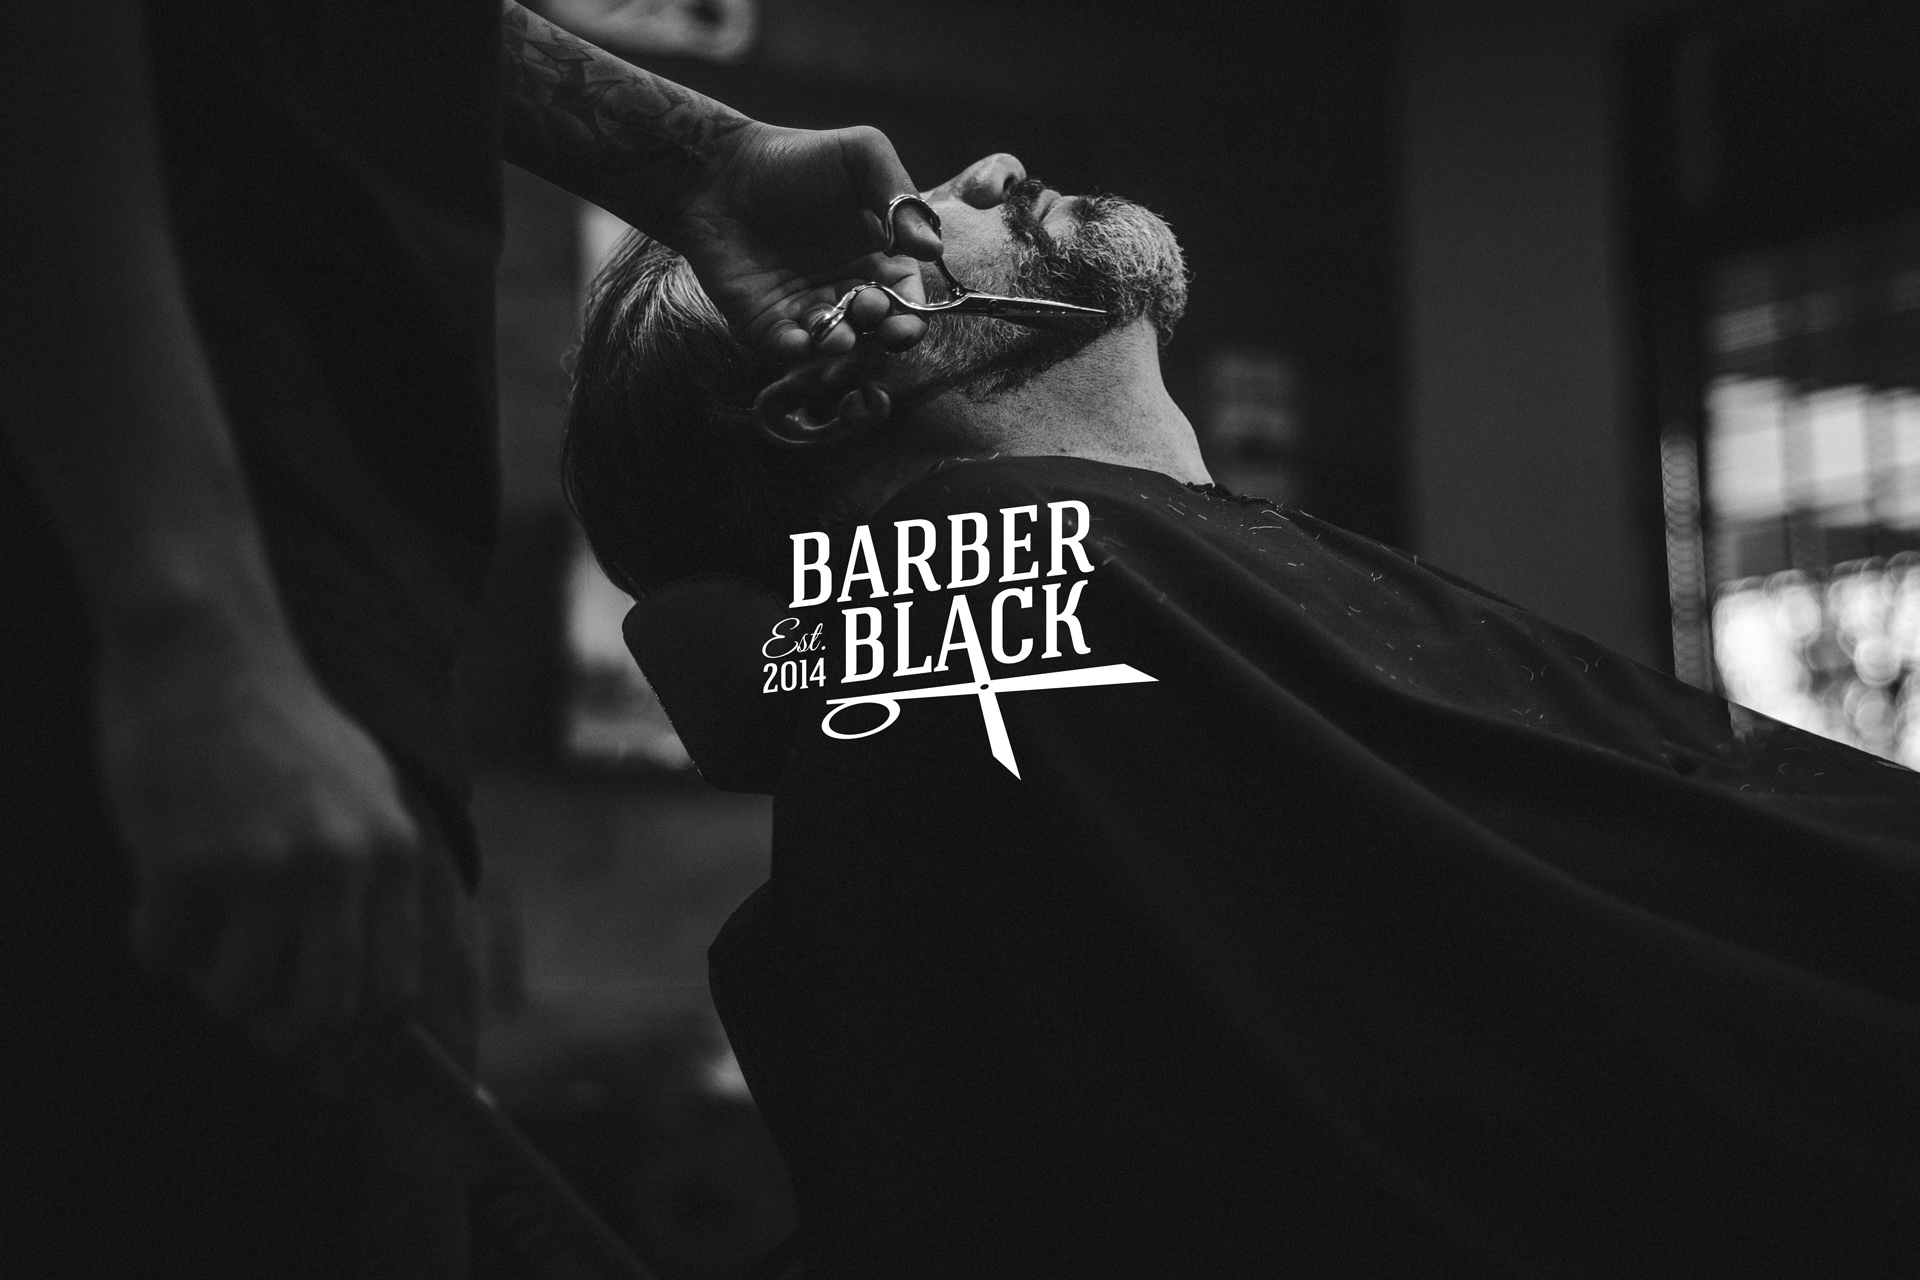 barber-black-logo-on-photo.jpg